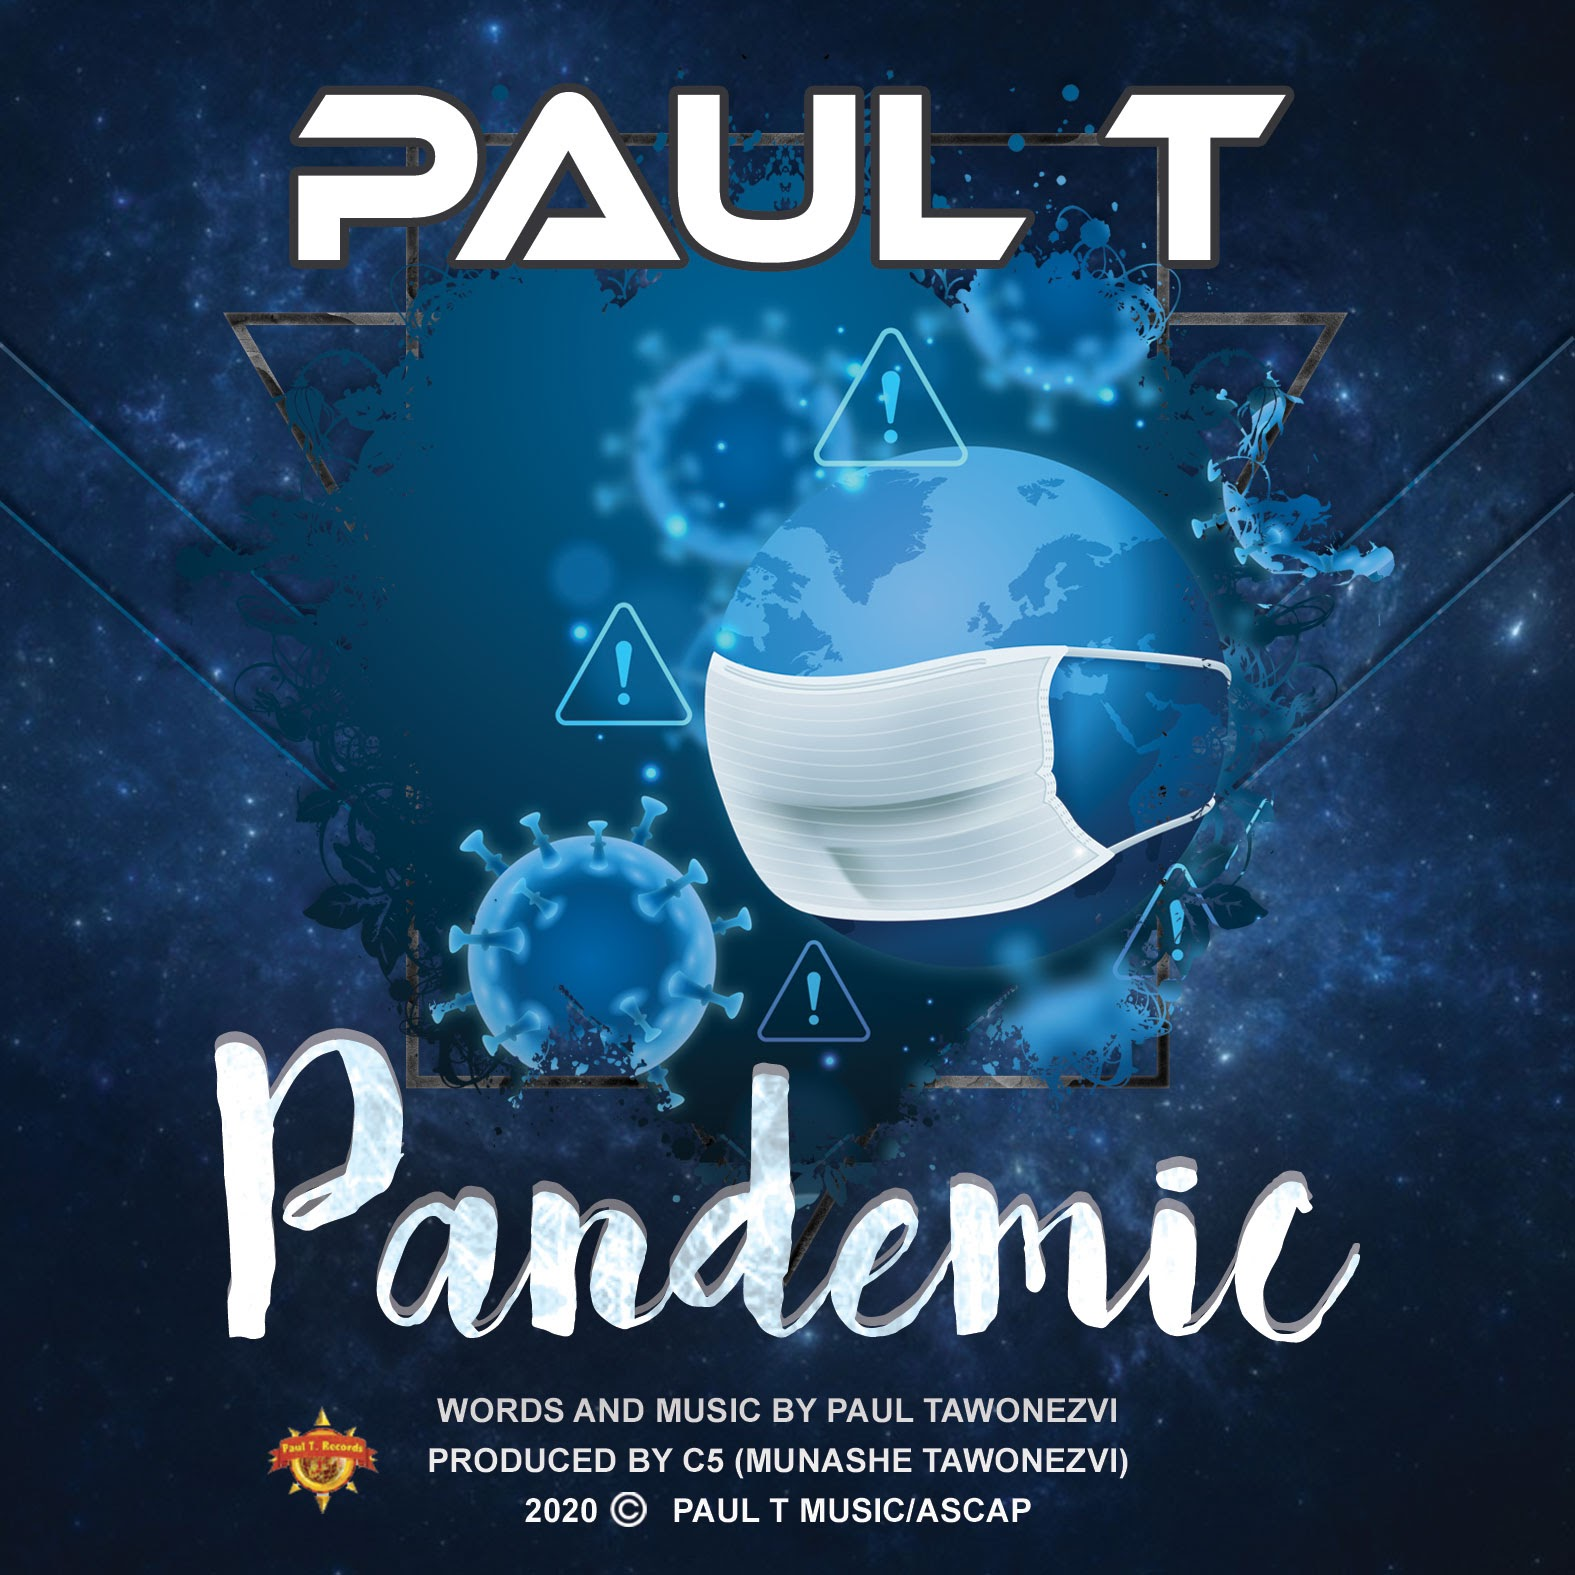 Pandemic by Paul Tawonezwi